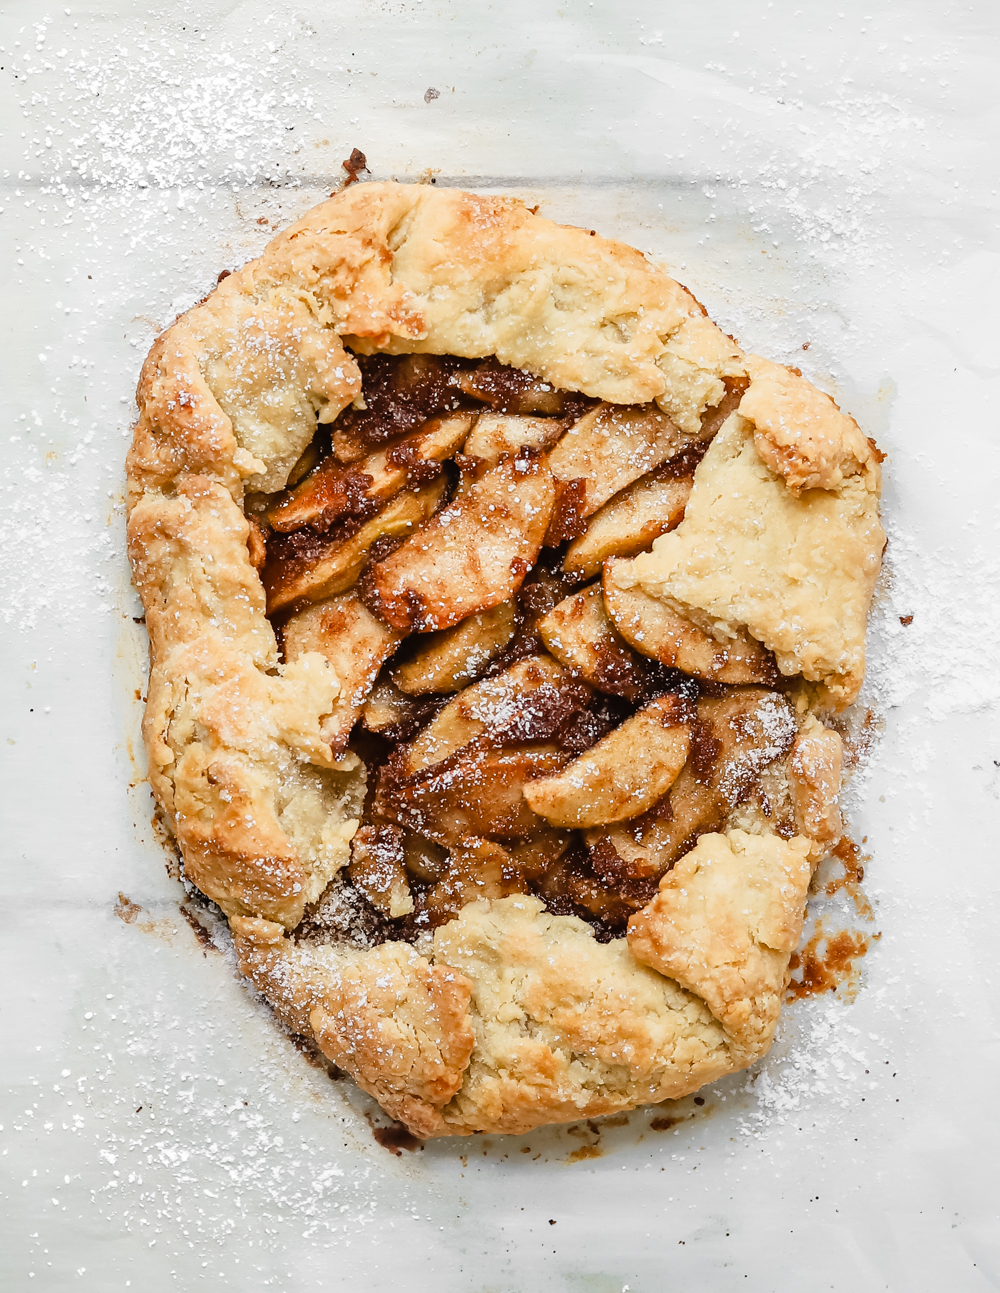 Delicious easy vegan apple galette with a gooey apple pie filling and a flaky golden crust.